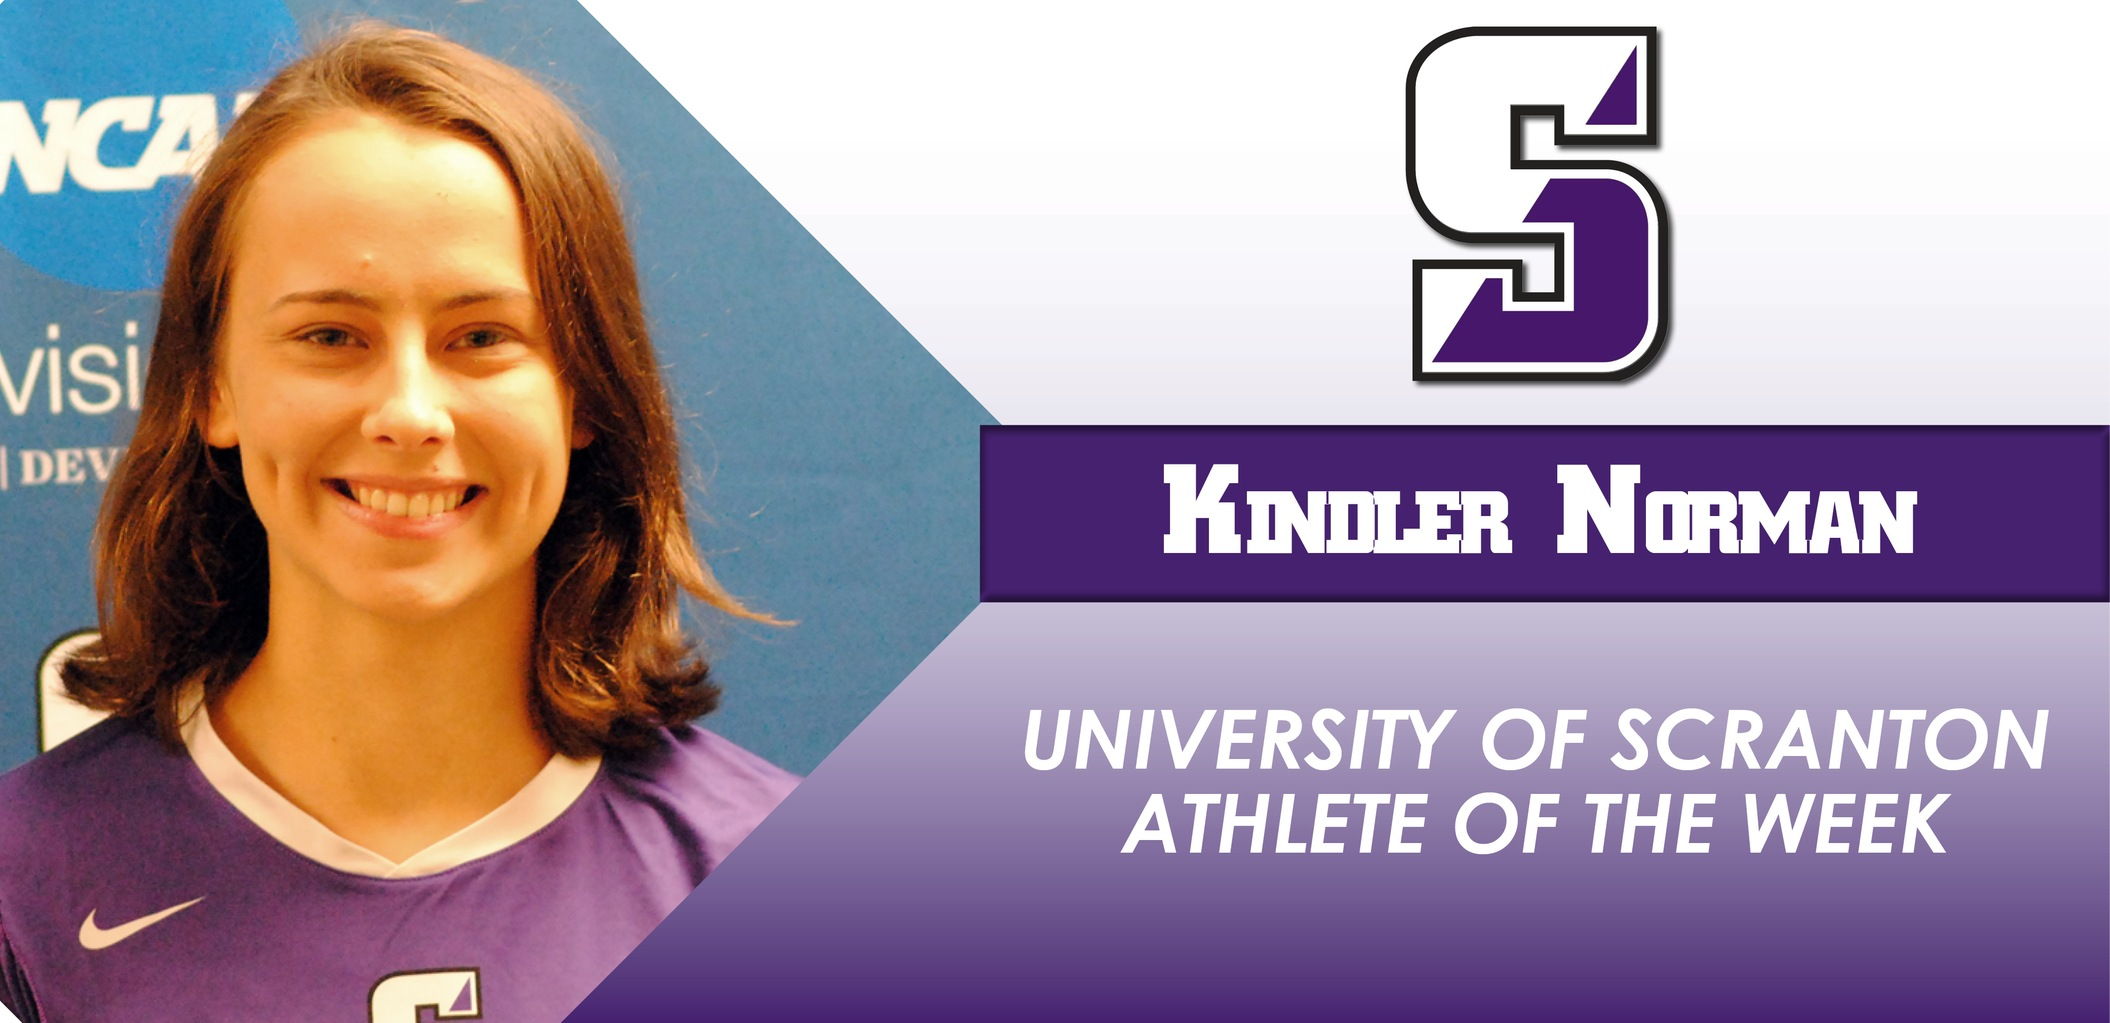 Volleyball's Kindler Norman Named University of Scranton Athlete of the Week